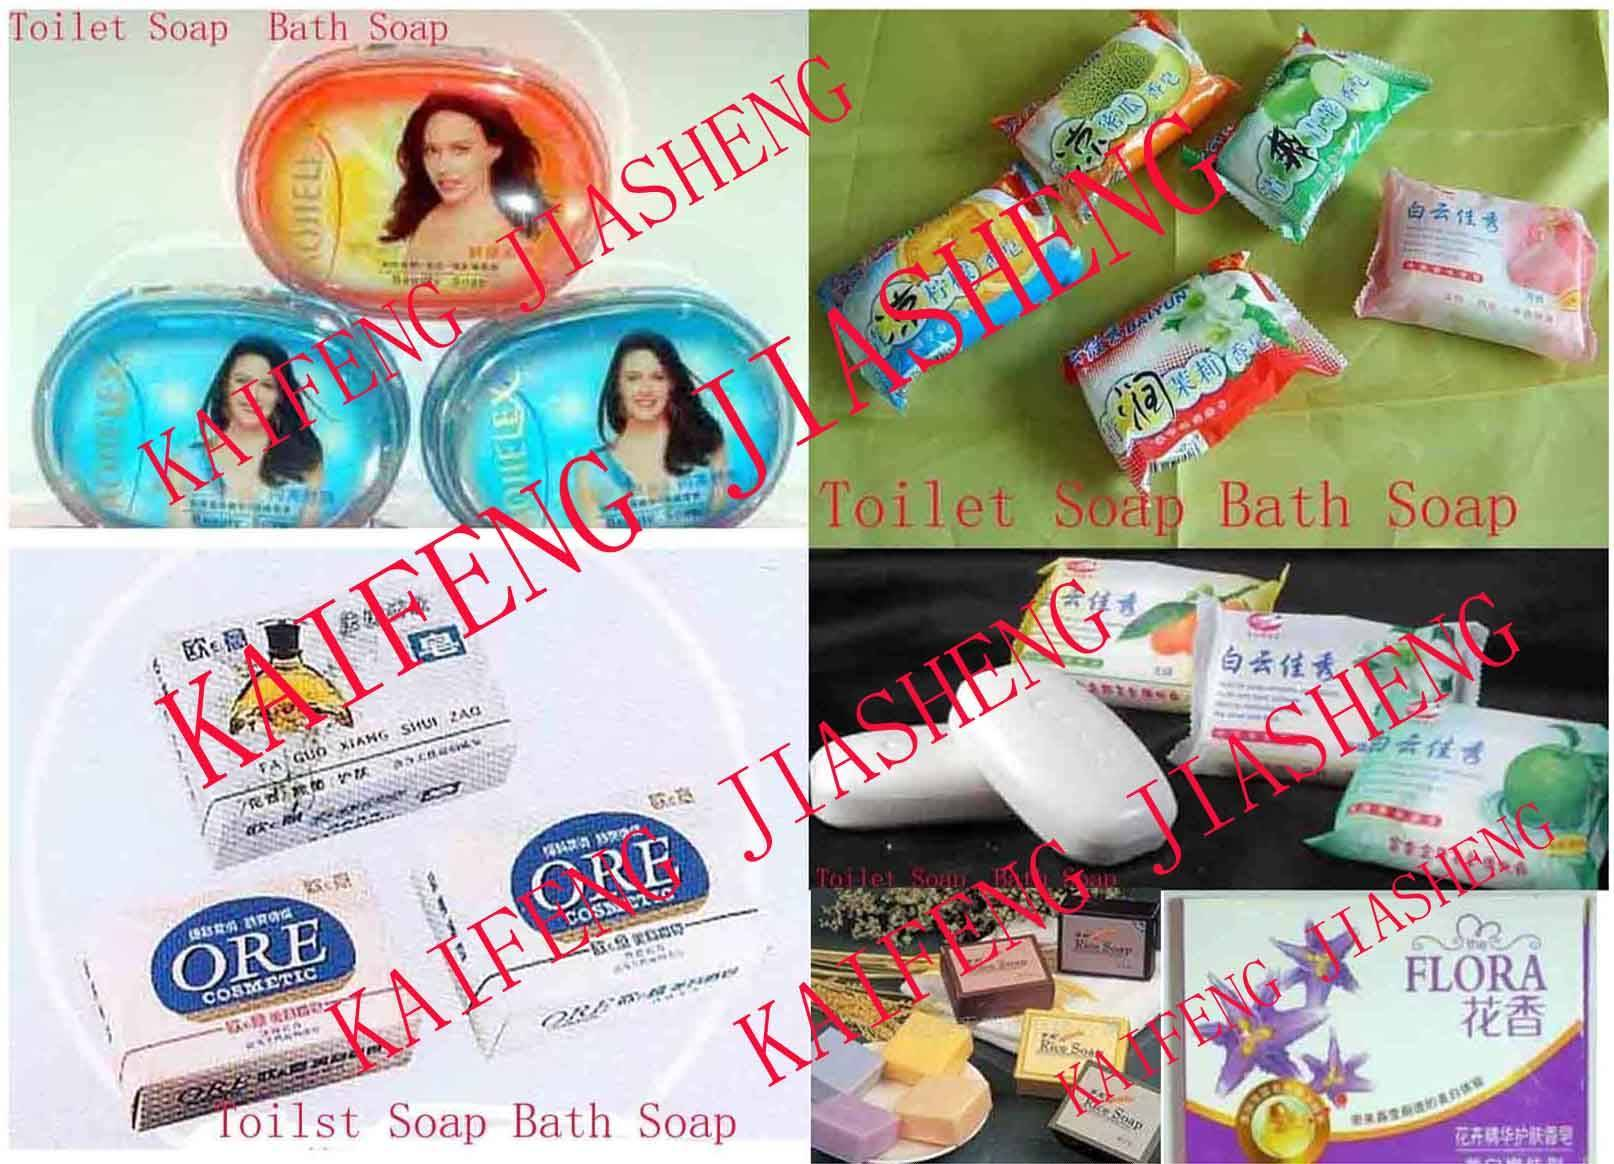 toilet soap / beauty soap / bath soap